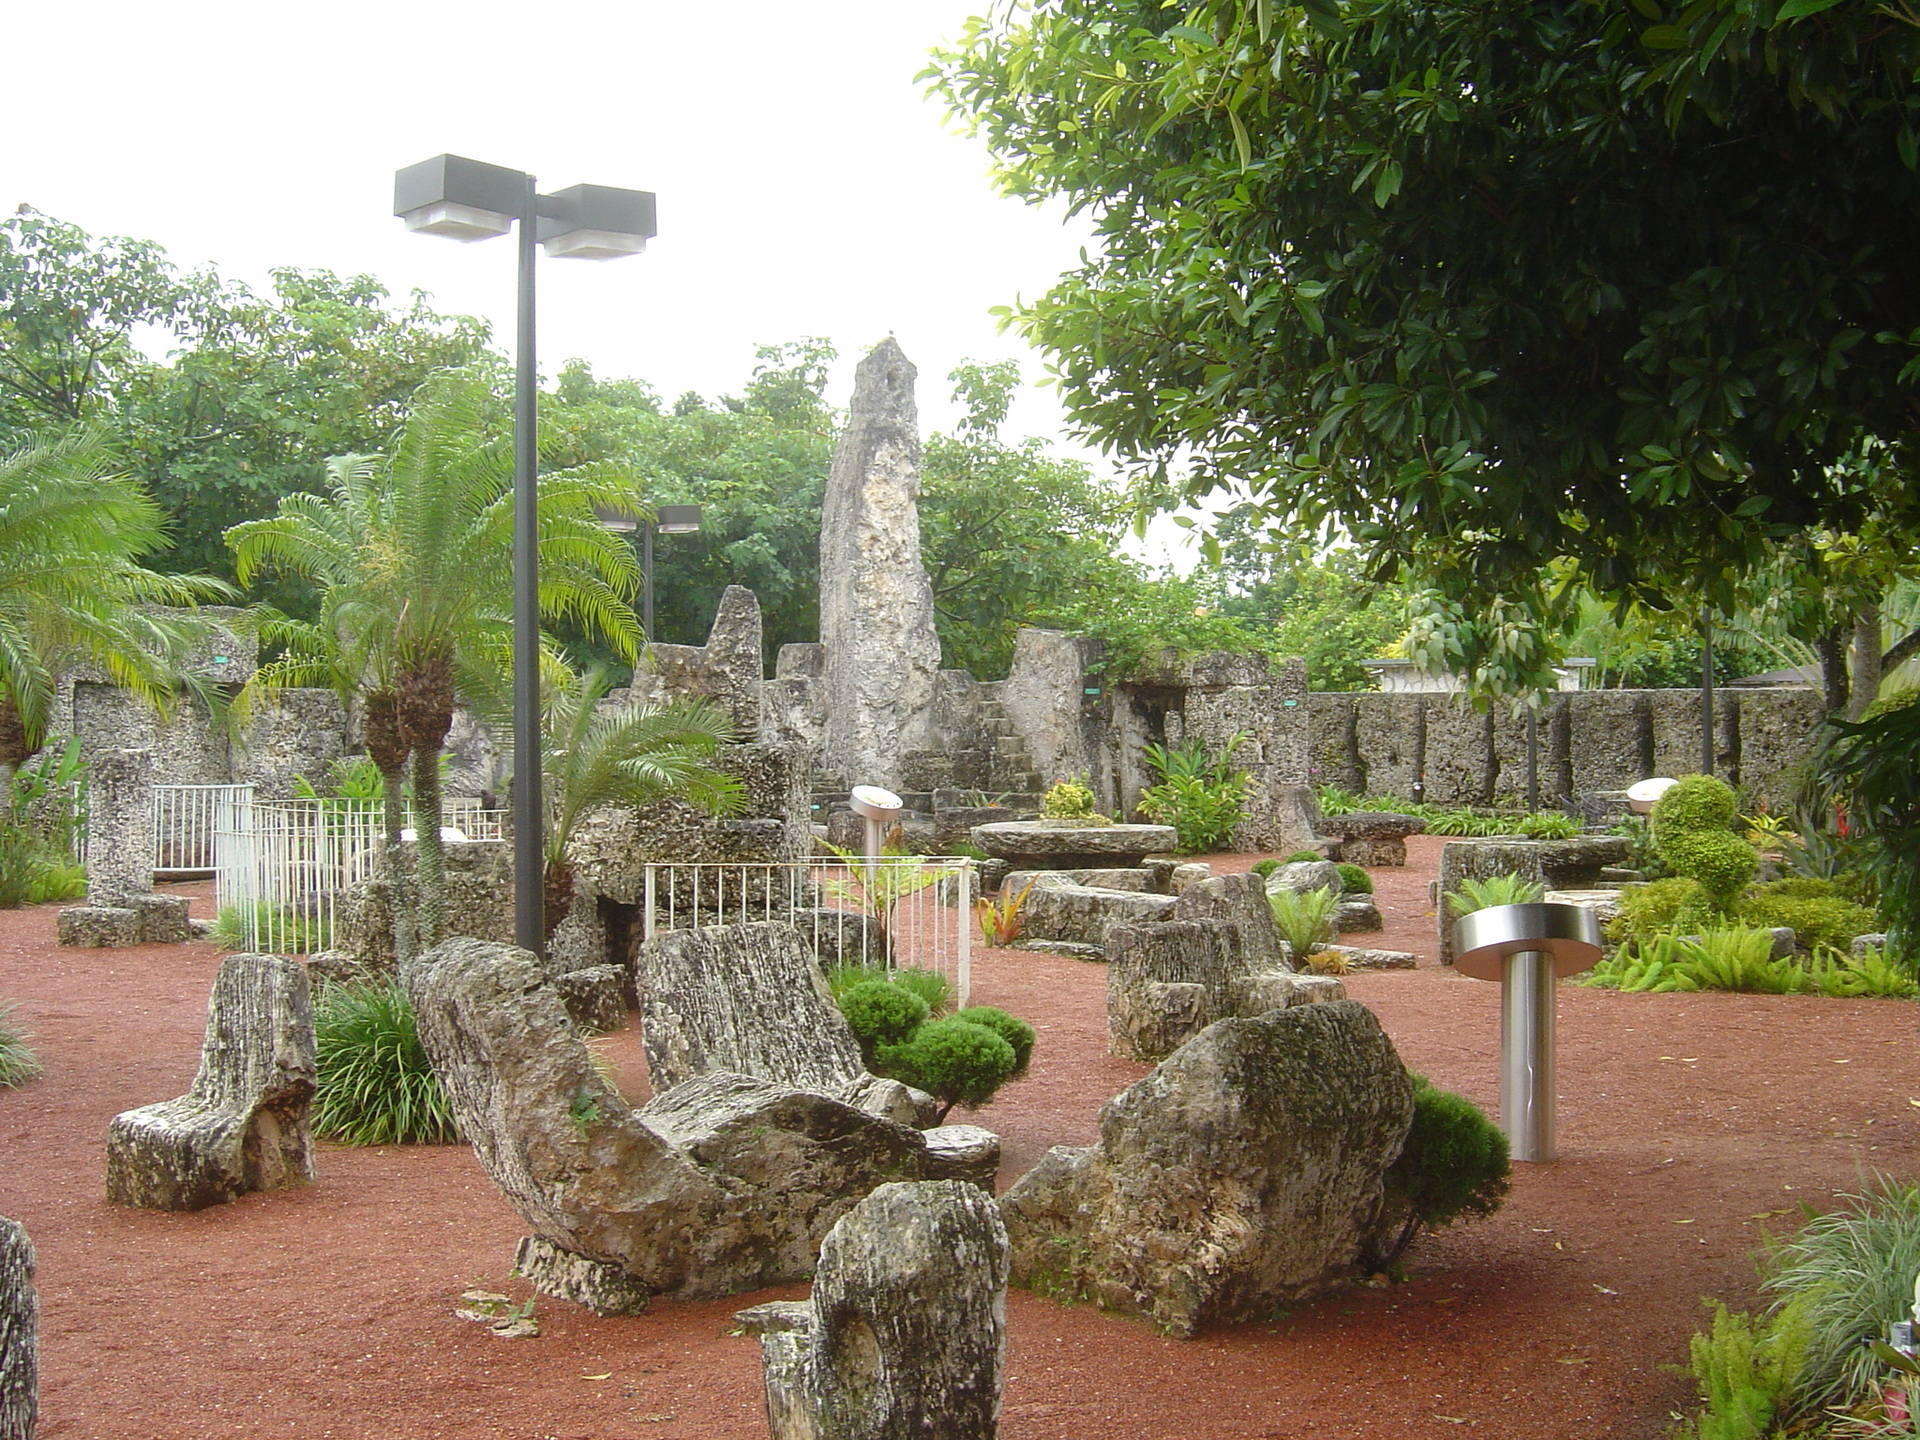 Coral Castle - Florida - Travel Photo (418025) - Fanpop